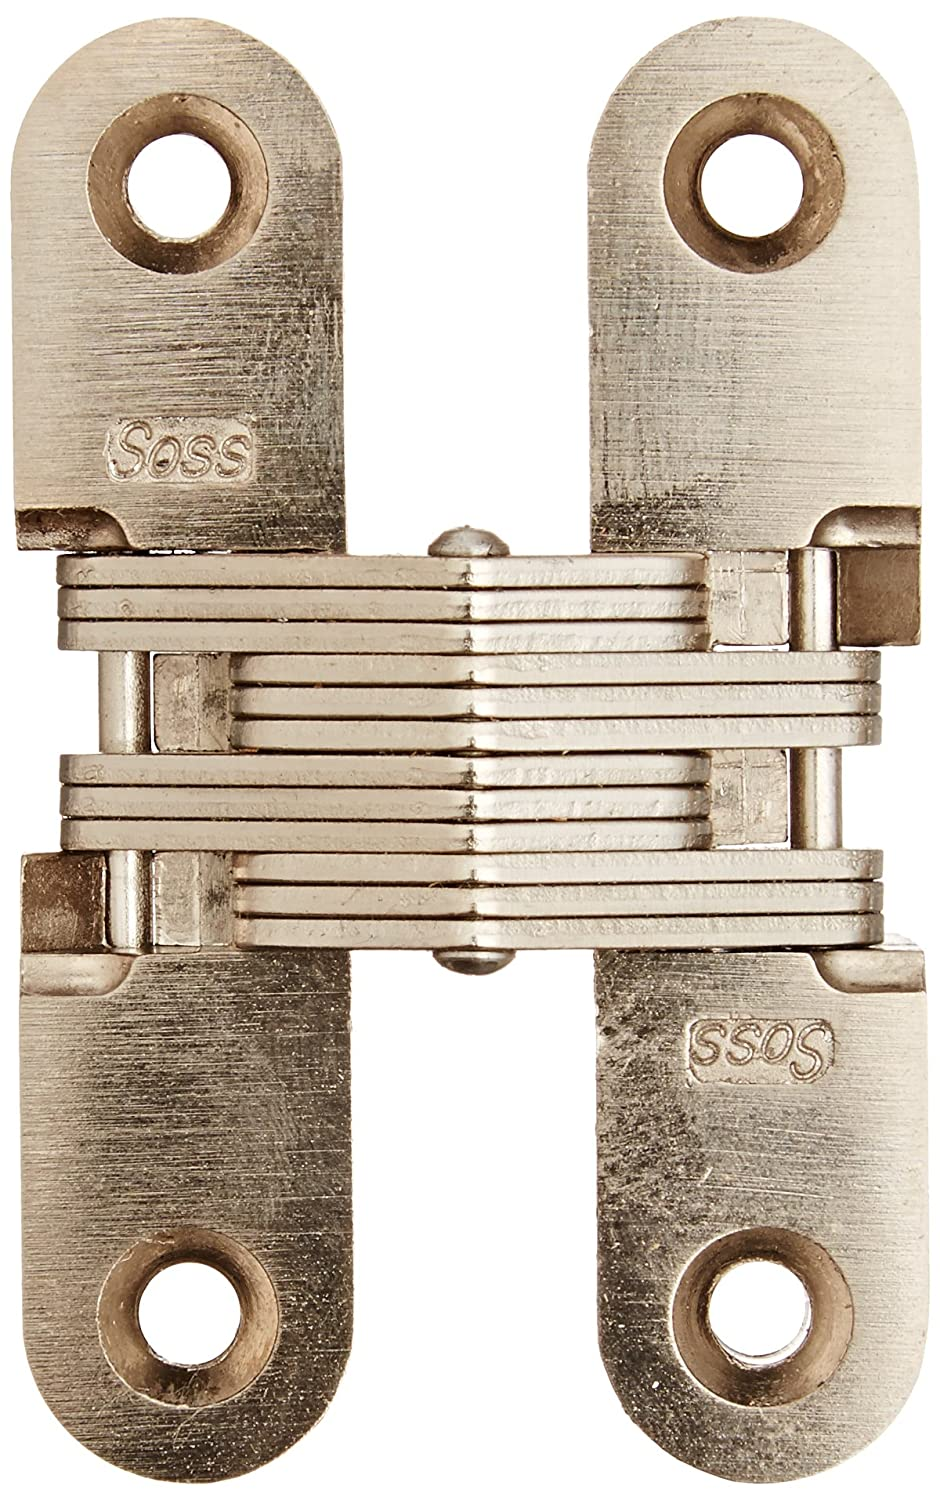 Satin Nickel Exterior Finish Mortise Mounting SOSS 208 Zinc Invisible Hinge with Holes for Wood or Metal Applications